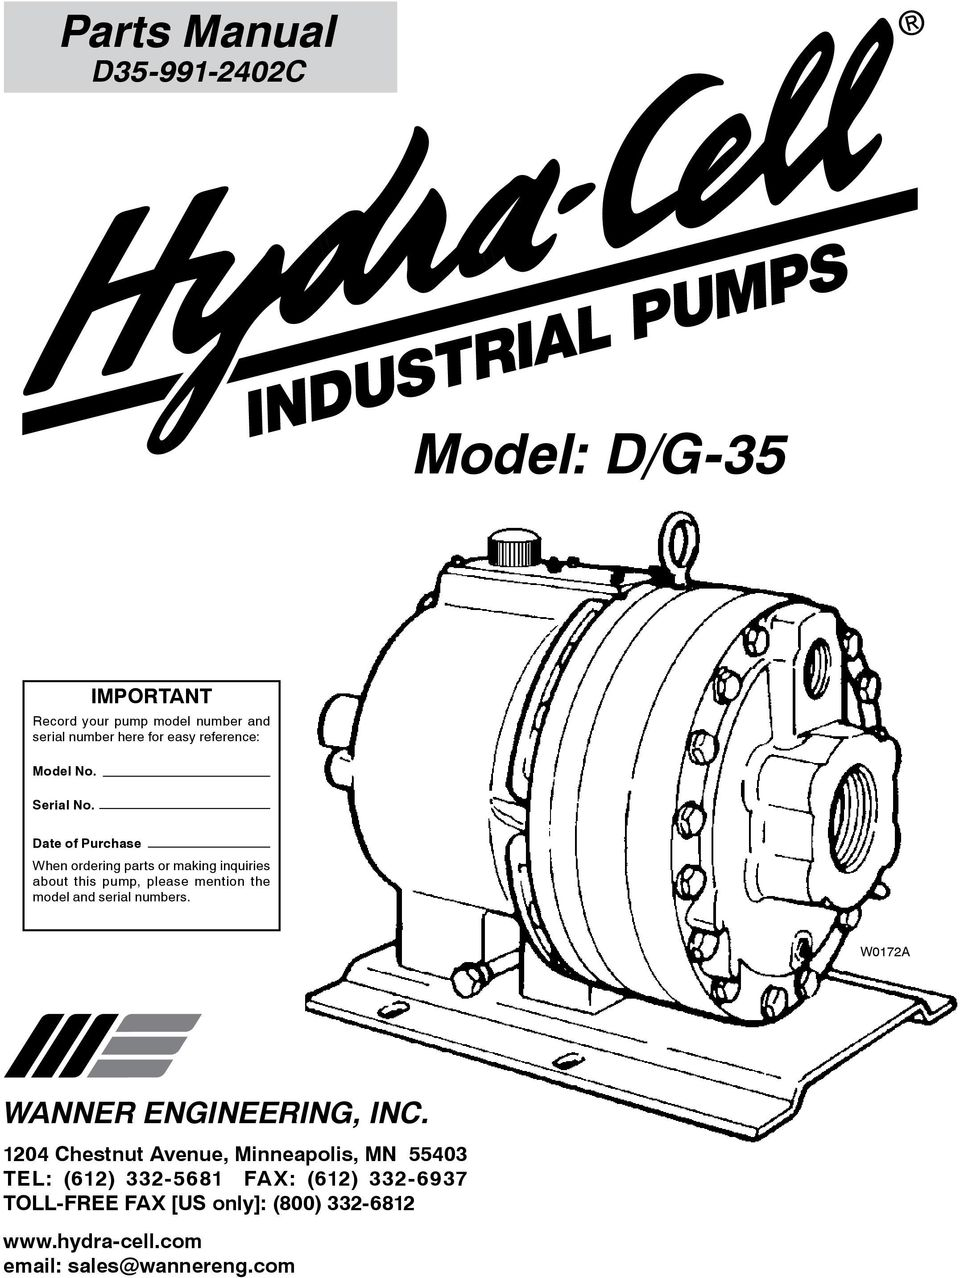 Model: D/G-35  Parts Manual D C WANNER ENGINEERING, INC